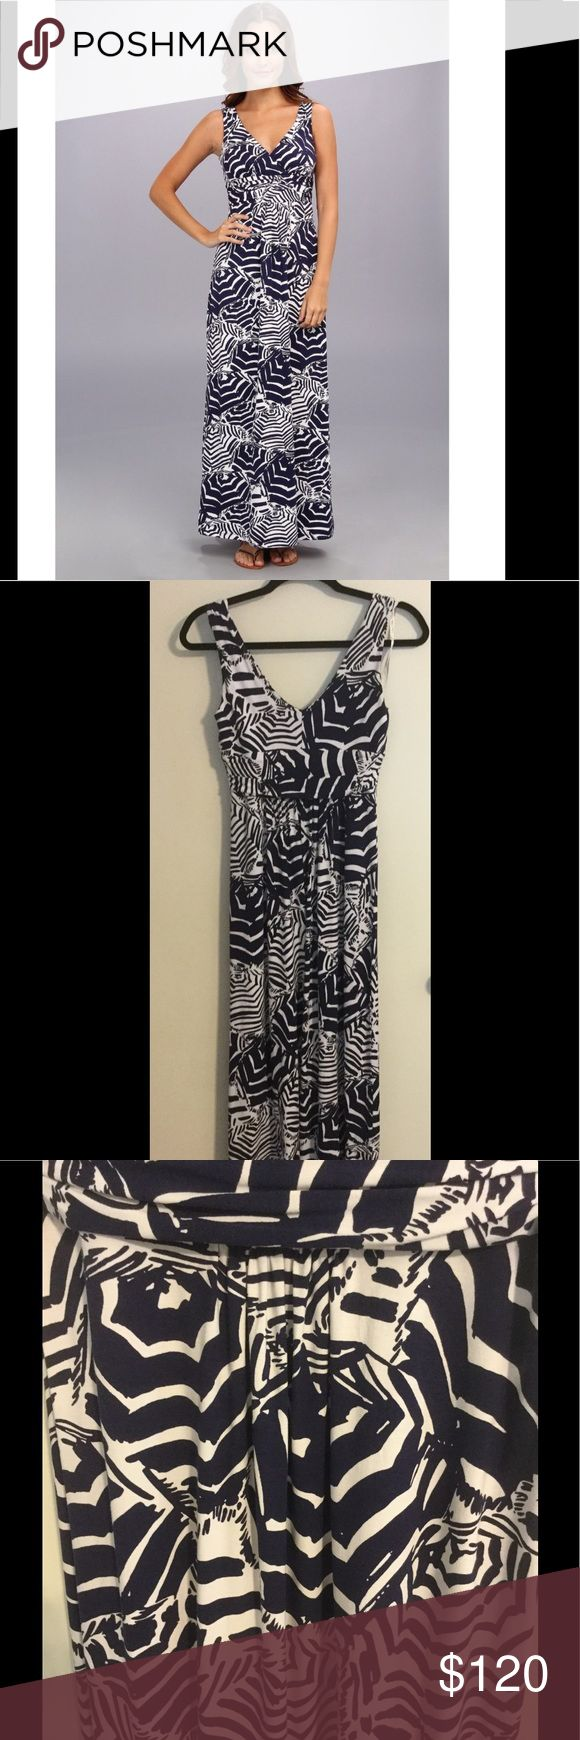 """Lilly Pulitzer NWOT Sloan Maxi Dress Oh Cabana Boy Lilly Pulitzer Sloane V-Neck Maxi in Oh Cabana Boy Print. Size S. NWOT. Navy and White. Will consider 🅿️🅿️ and love to bundle.   The Sloane maxi is the perfect option for summer. This printed jersey dress is flattering on all figures.The v-neck and jersey fabric are perfect for traveling, going out for lunch or spending the day at home.  Printed Sleeveless V-Neck Maxi Dress With Empire Waistline 60"""" From Top Of Shoulder To Hem. Rayon…"""